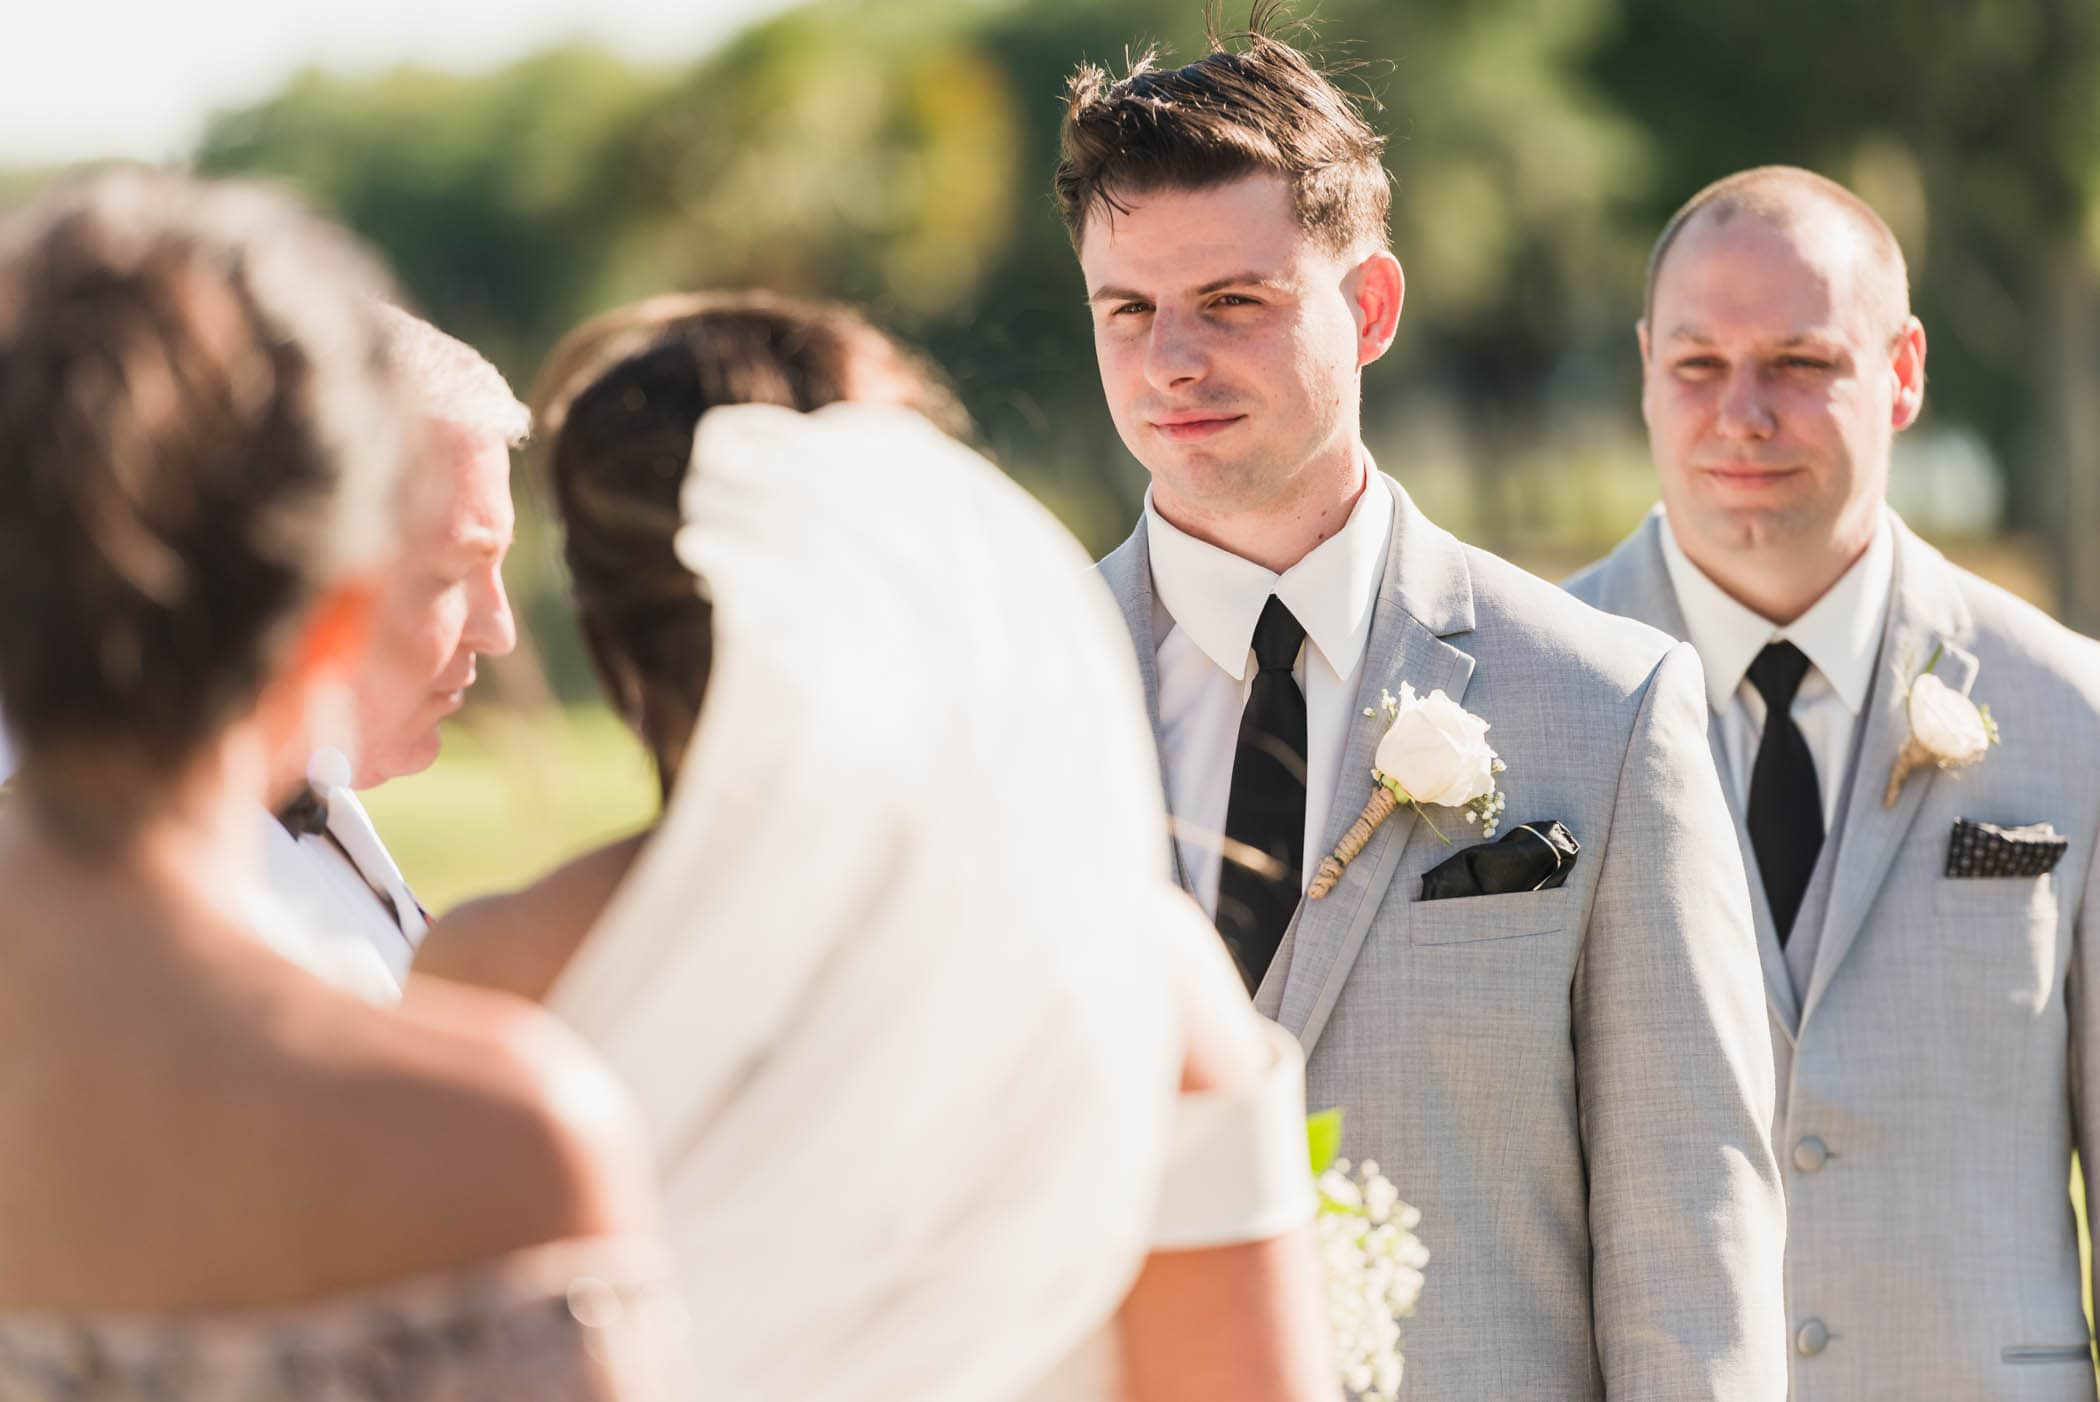 Groom looking at bride during wedding ceremony Dataw Island Club House by Susan DeLoach Photography SC wedding photographers